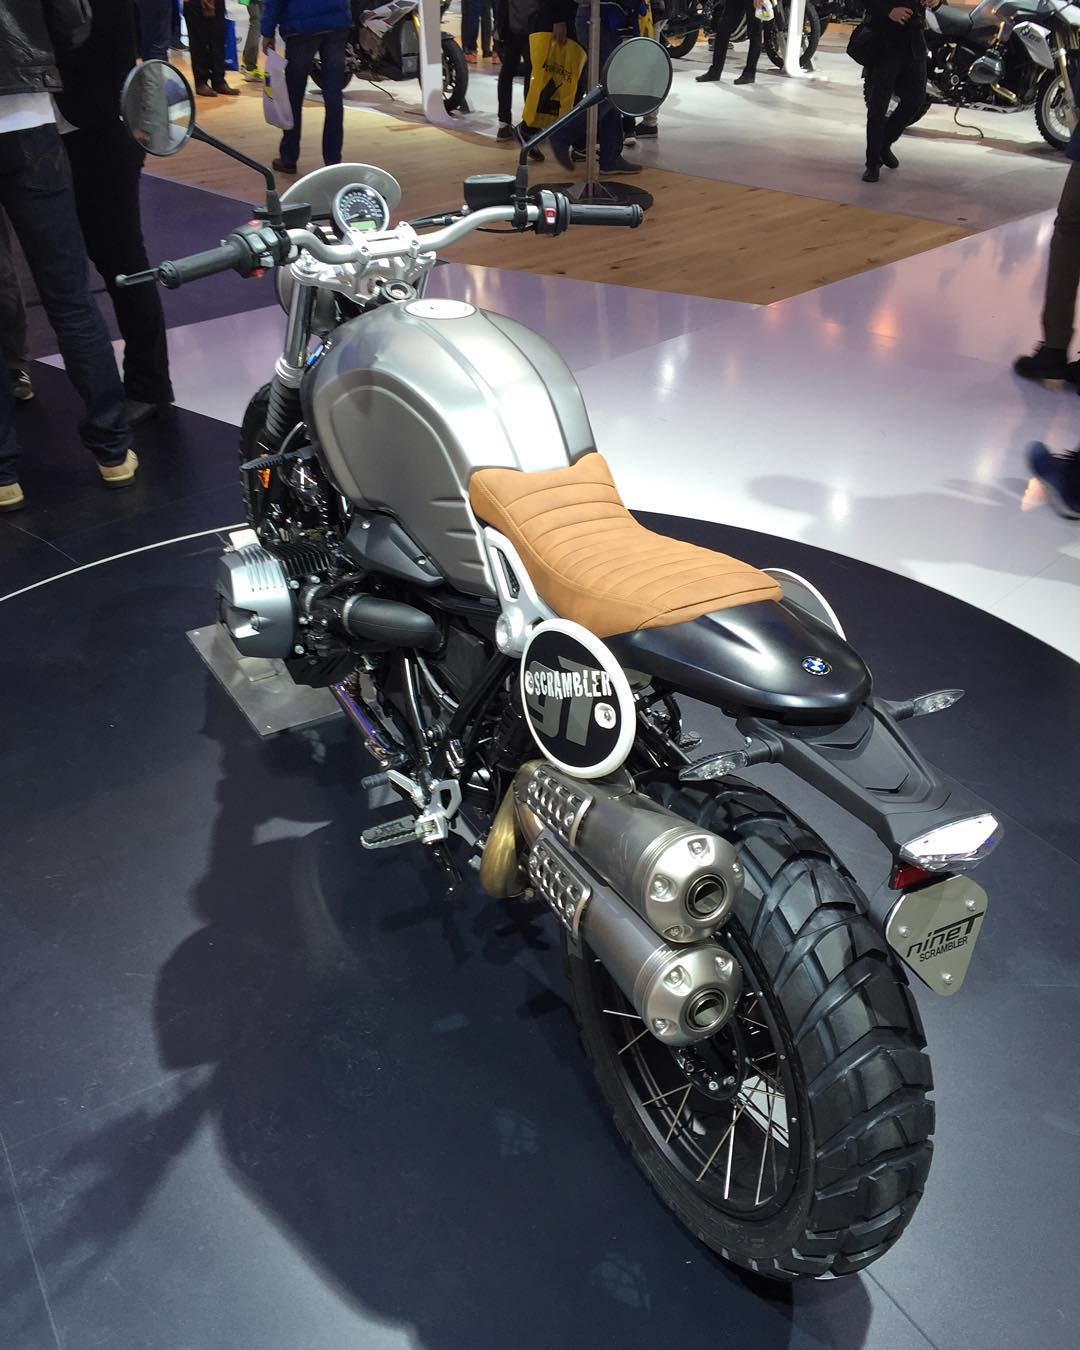 New #BMW #rninet #scrambler is looking good!